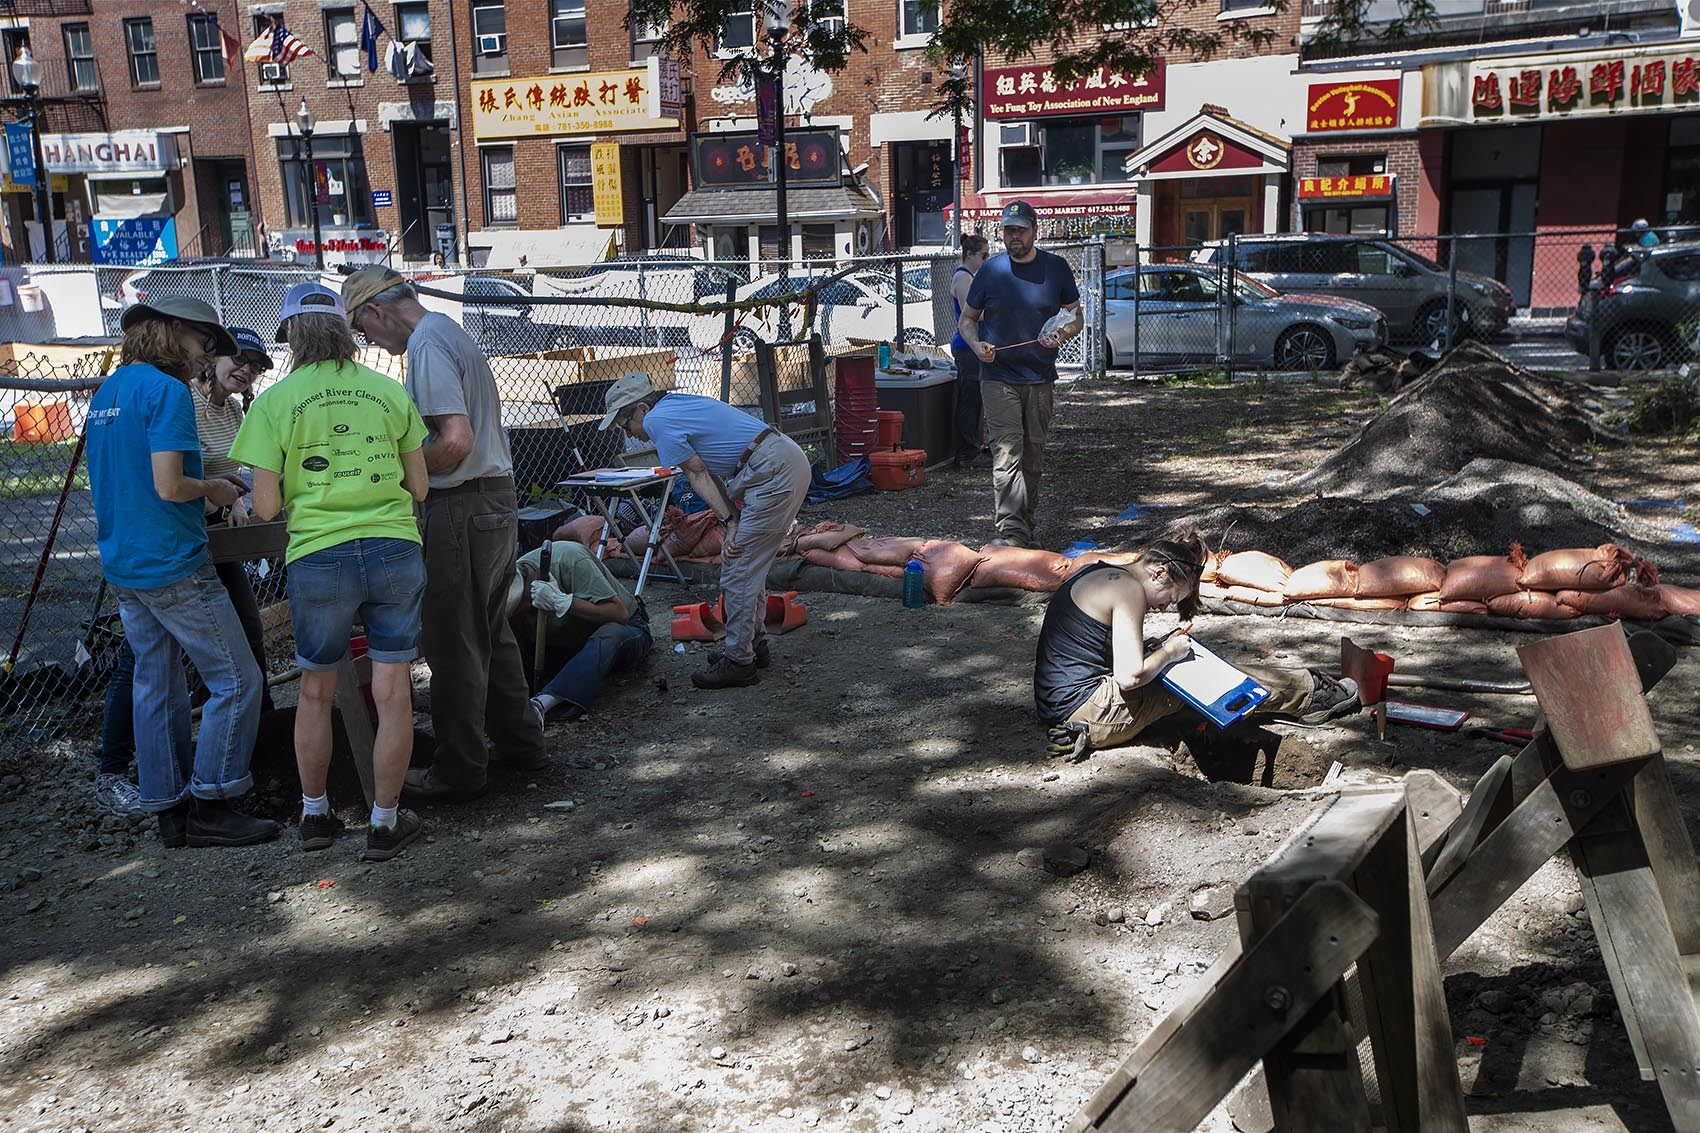 City of Boston Archaeologist Joseph Bagley walks into the first archaeological dig in Boston's historic Chinatown on Hudson Street. (Jesse Costa/WBUR)